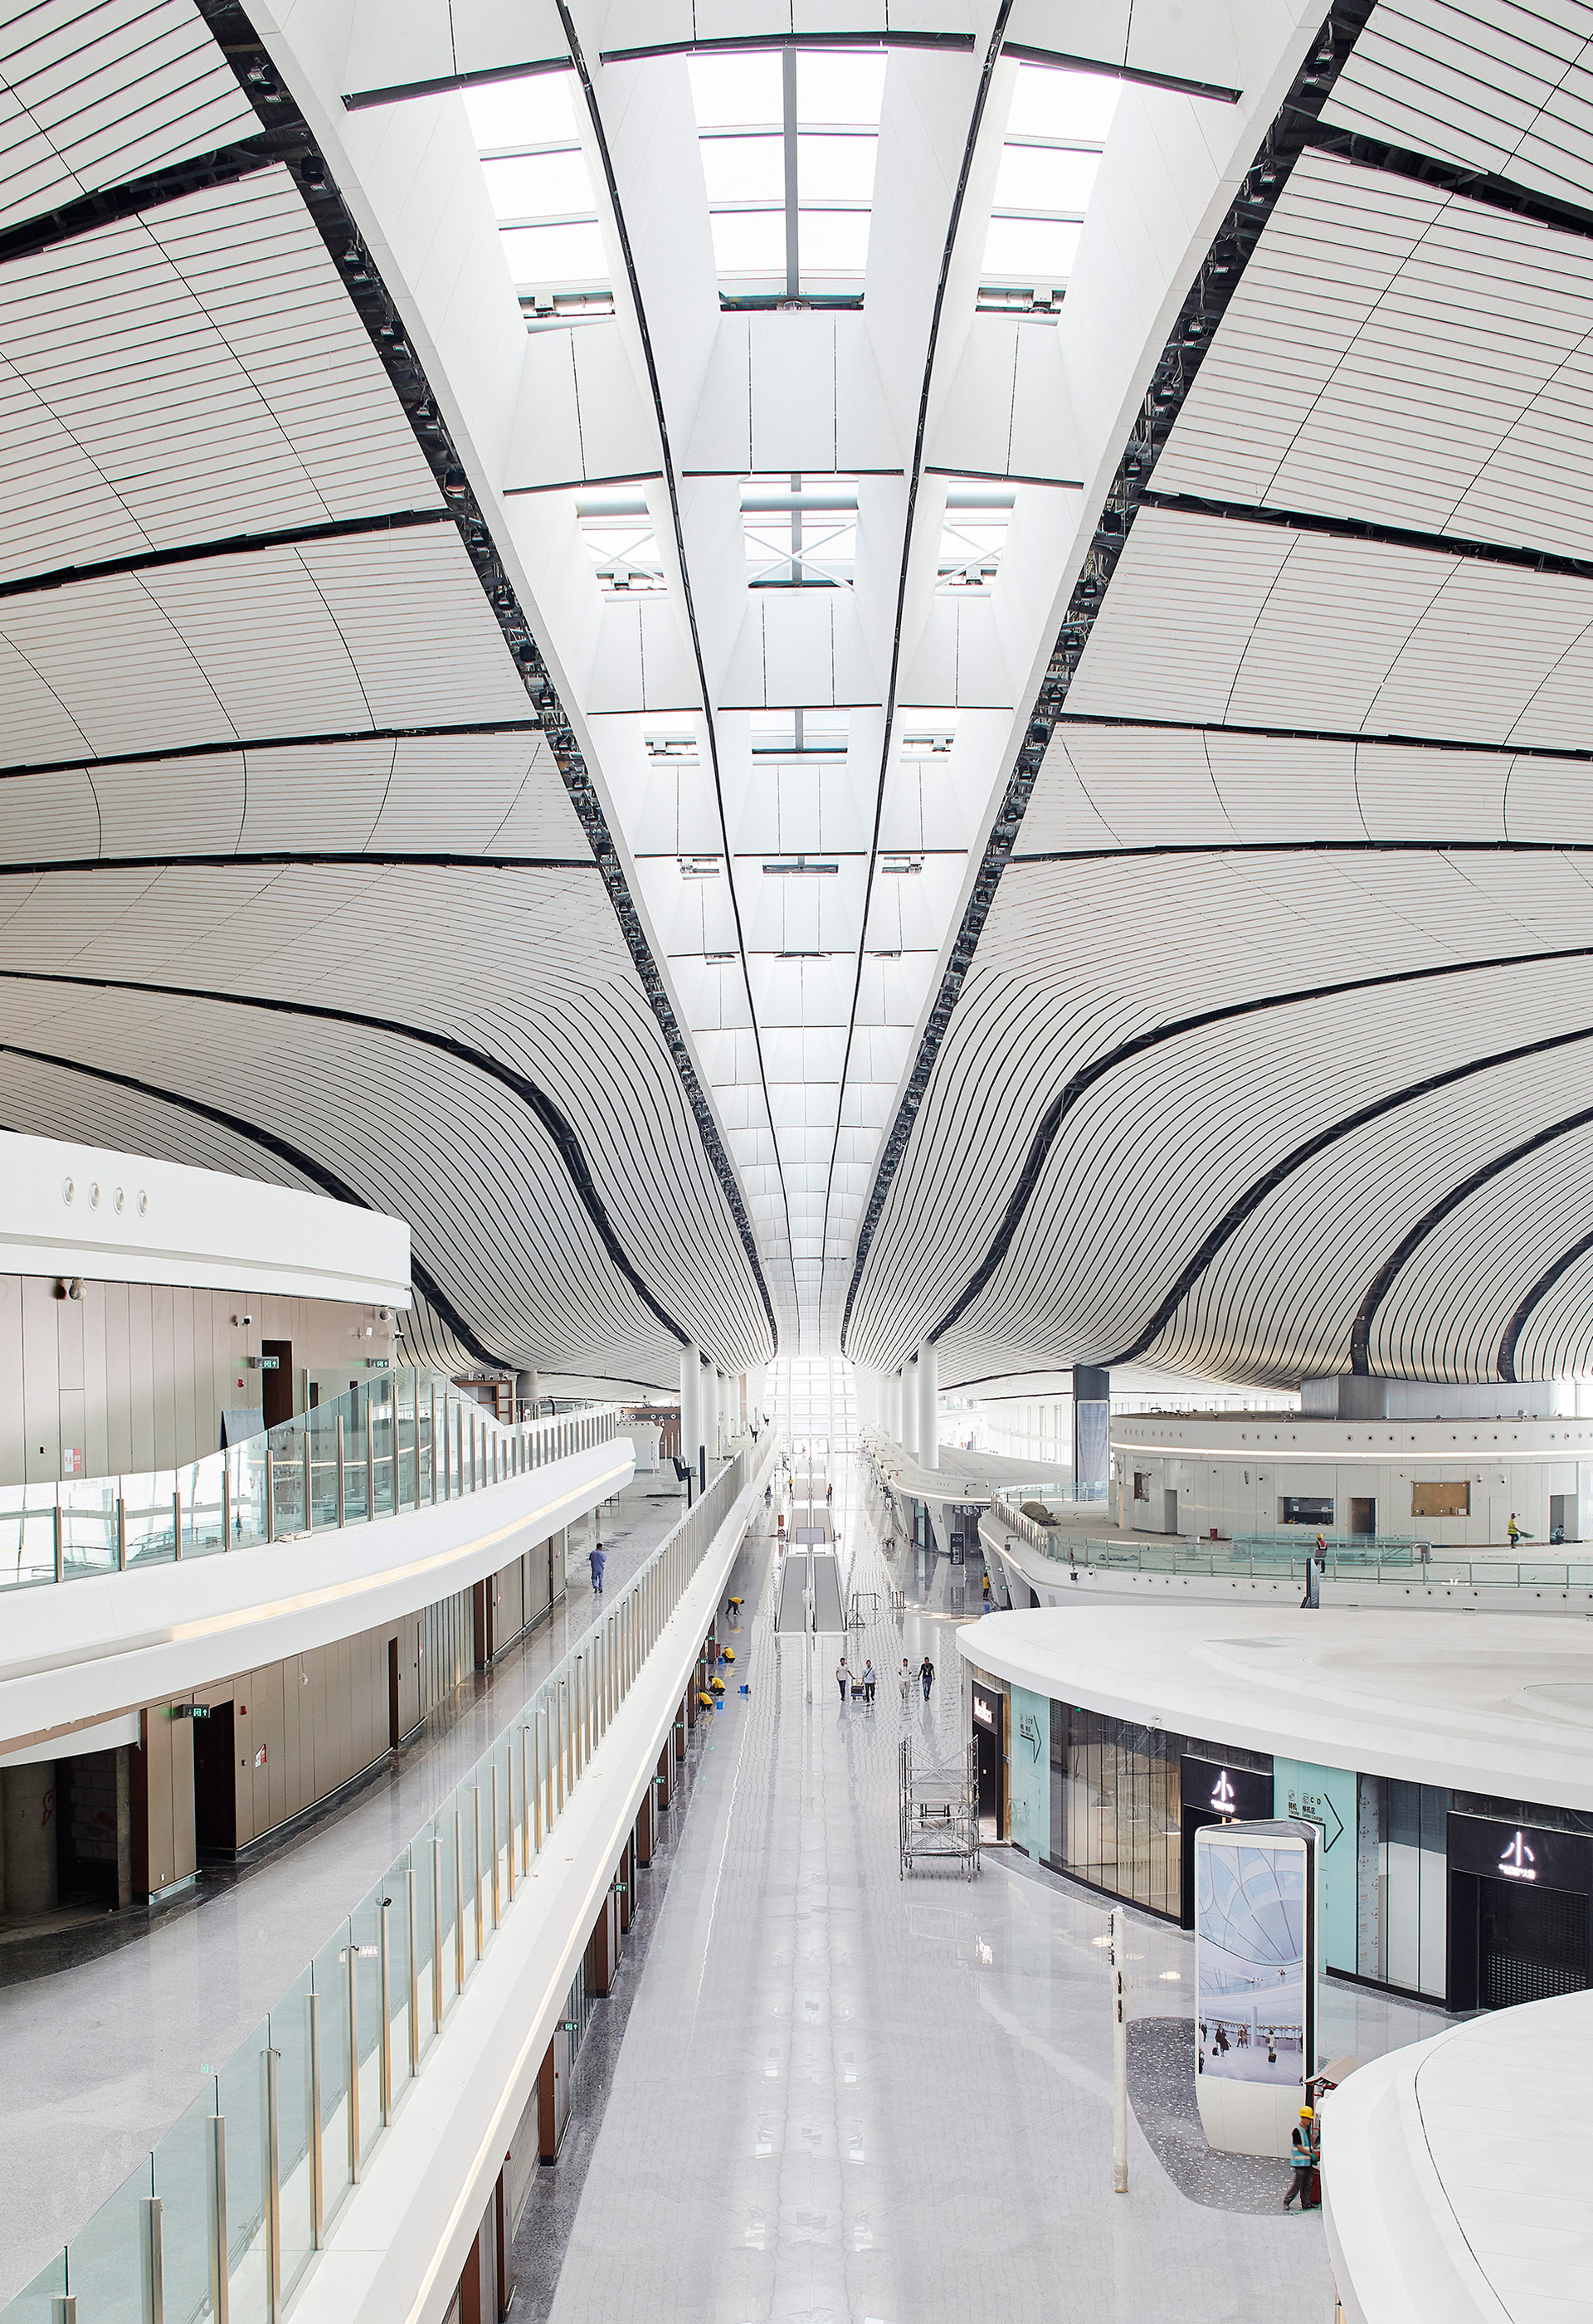 Beijing Daxing international airport - Interiors | Beijing Daxing International Airport | Zaha Hadid Architects | STIRworld